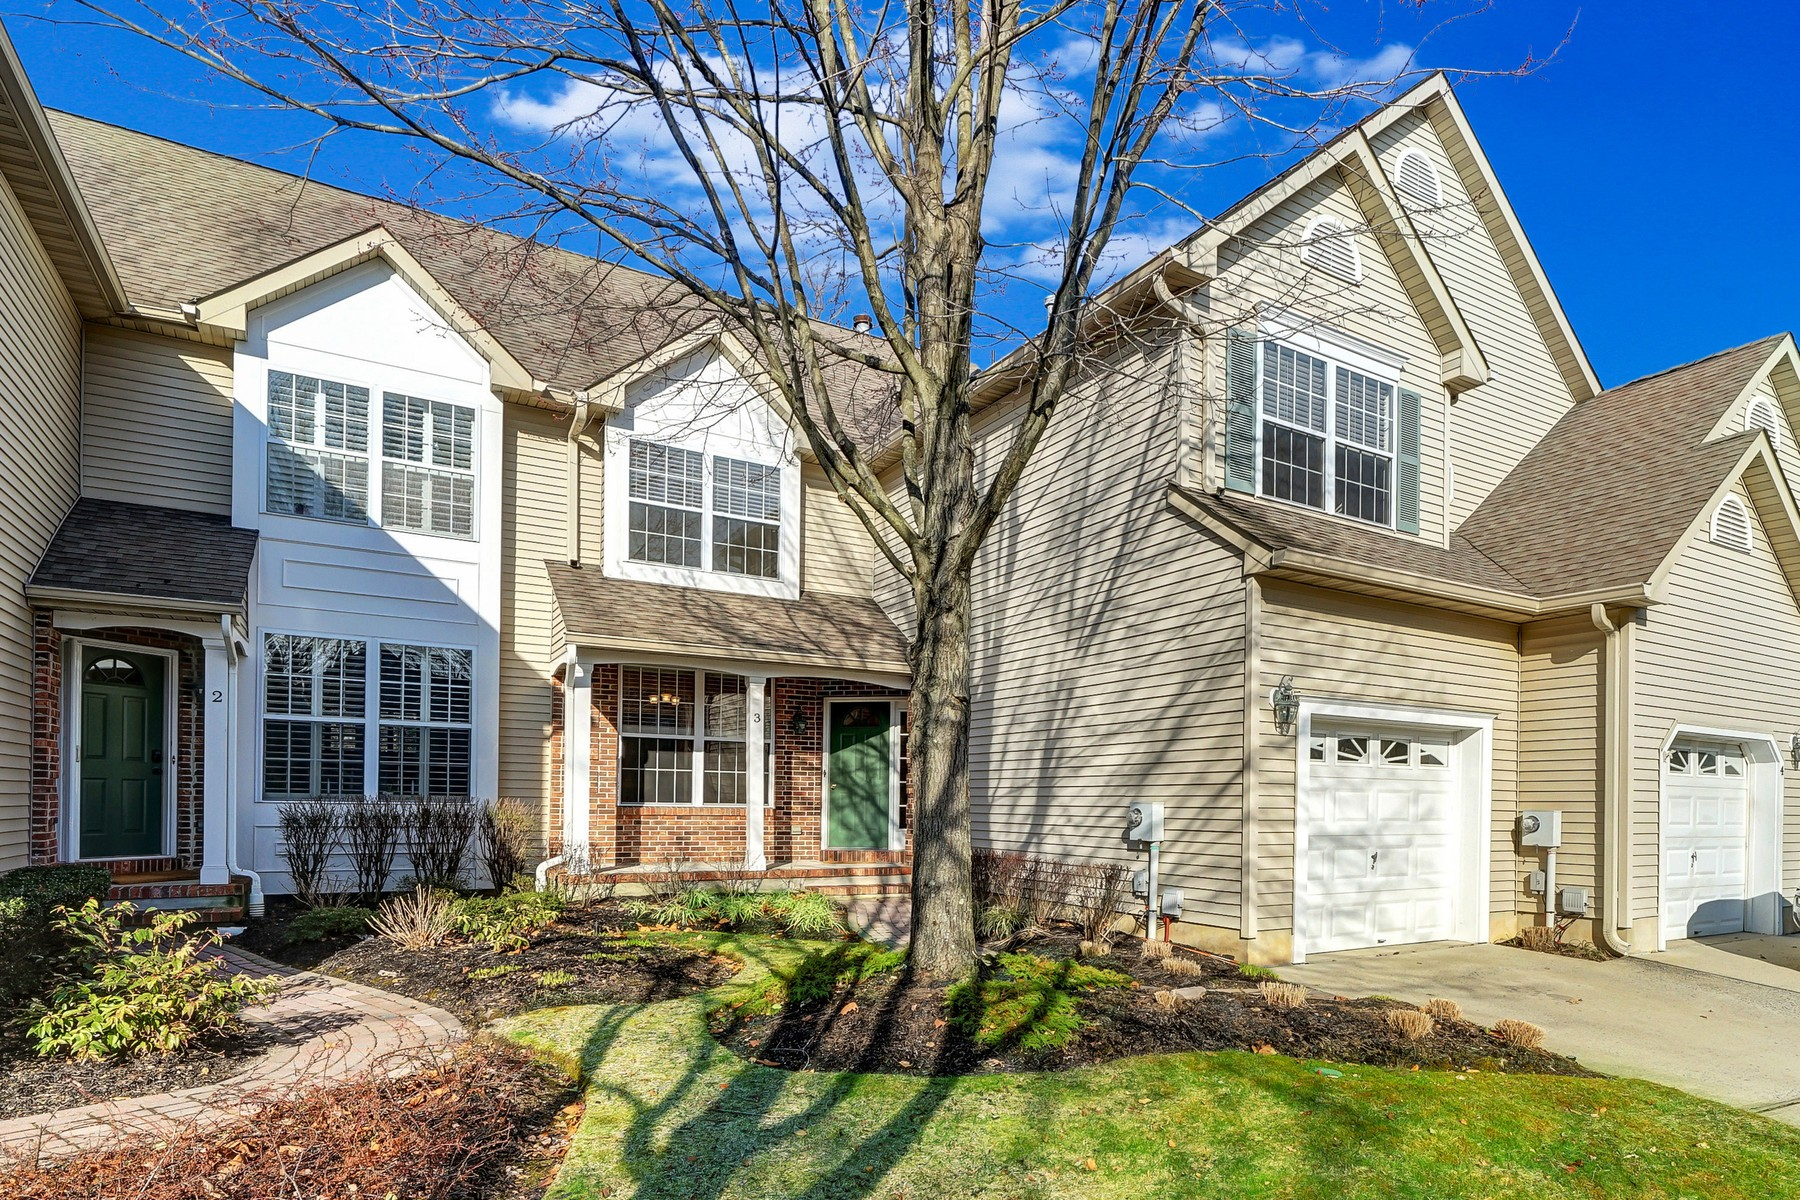 Condominium for Sale at Sophisticated Lifestyle 3 Courtyard Lane Brielle, New Jersey 08730 United States